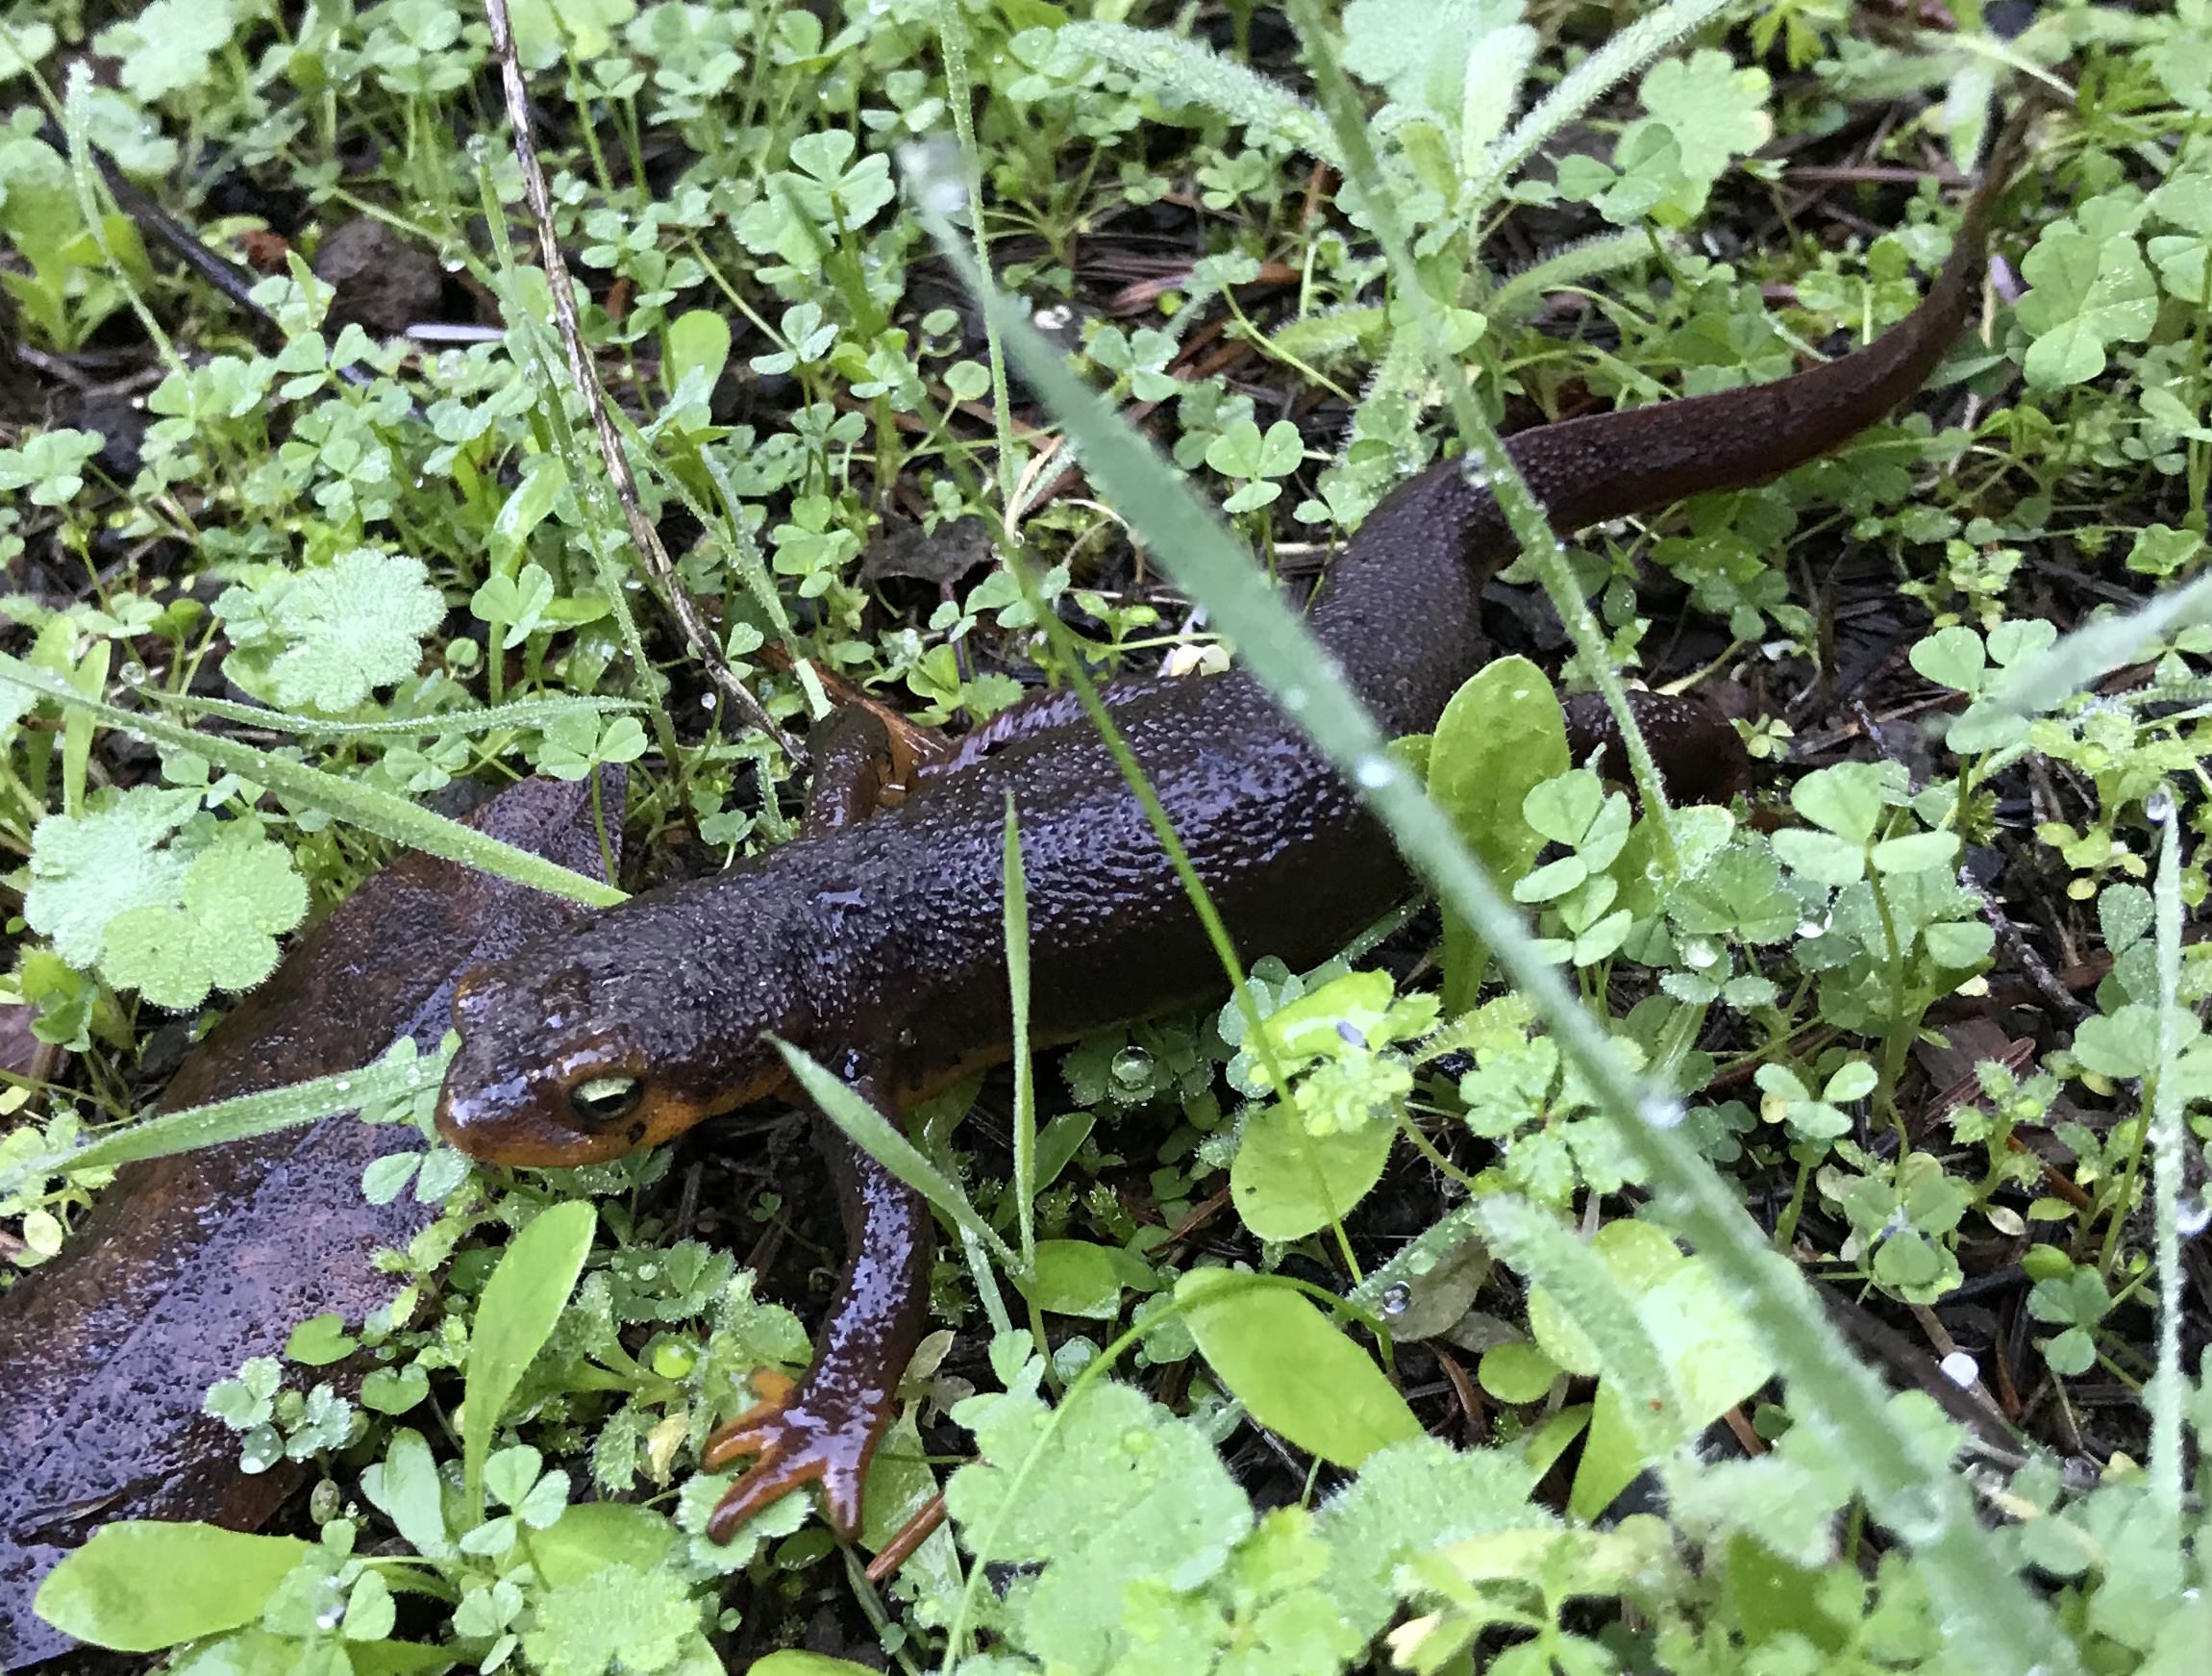 Photo of a migrating California newt (<em>Taricha torosa</em>). Photo credit: Tiffany Yap</small></center>